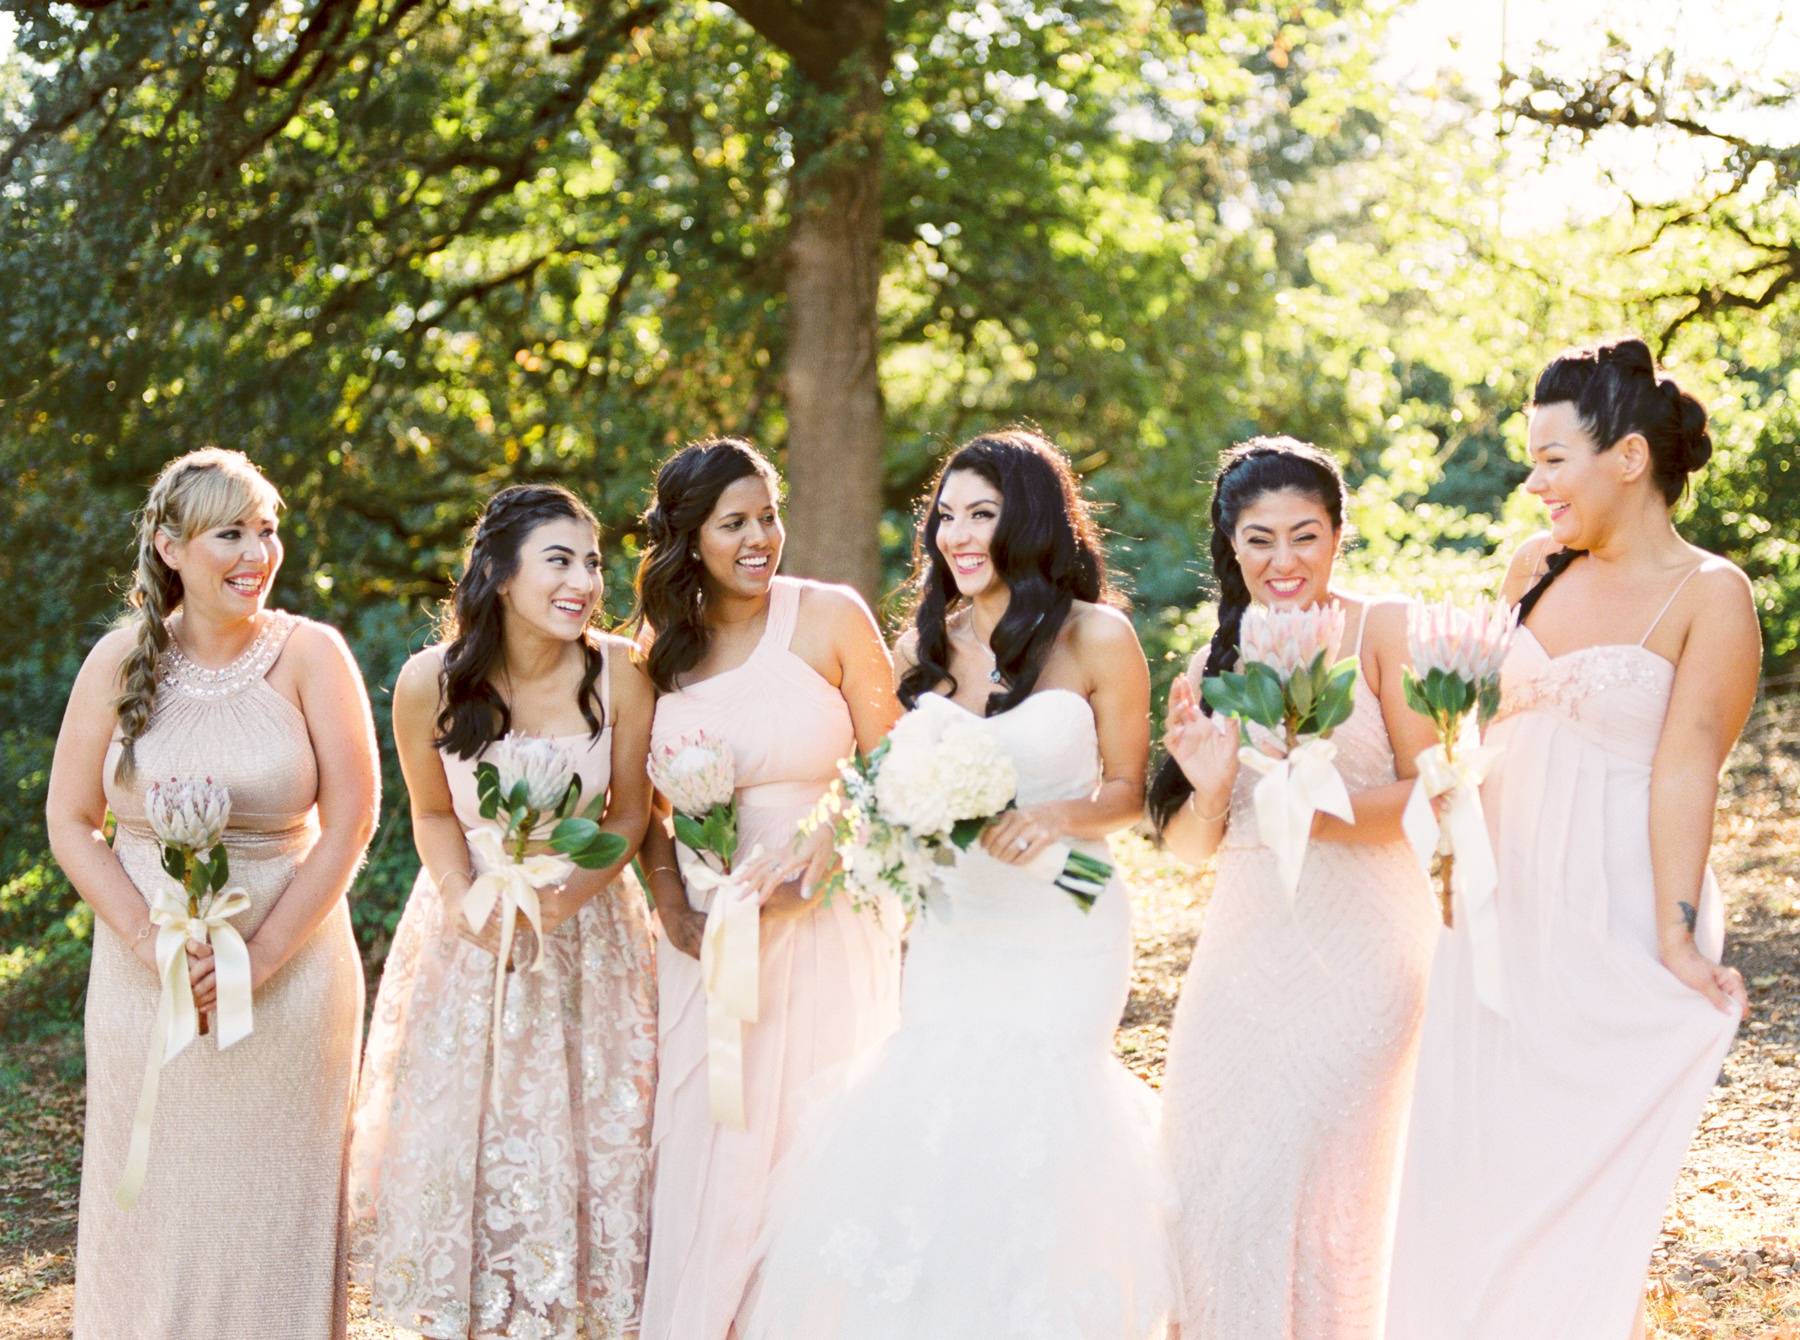 Bride and Bridesmaids in sunlight